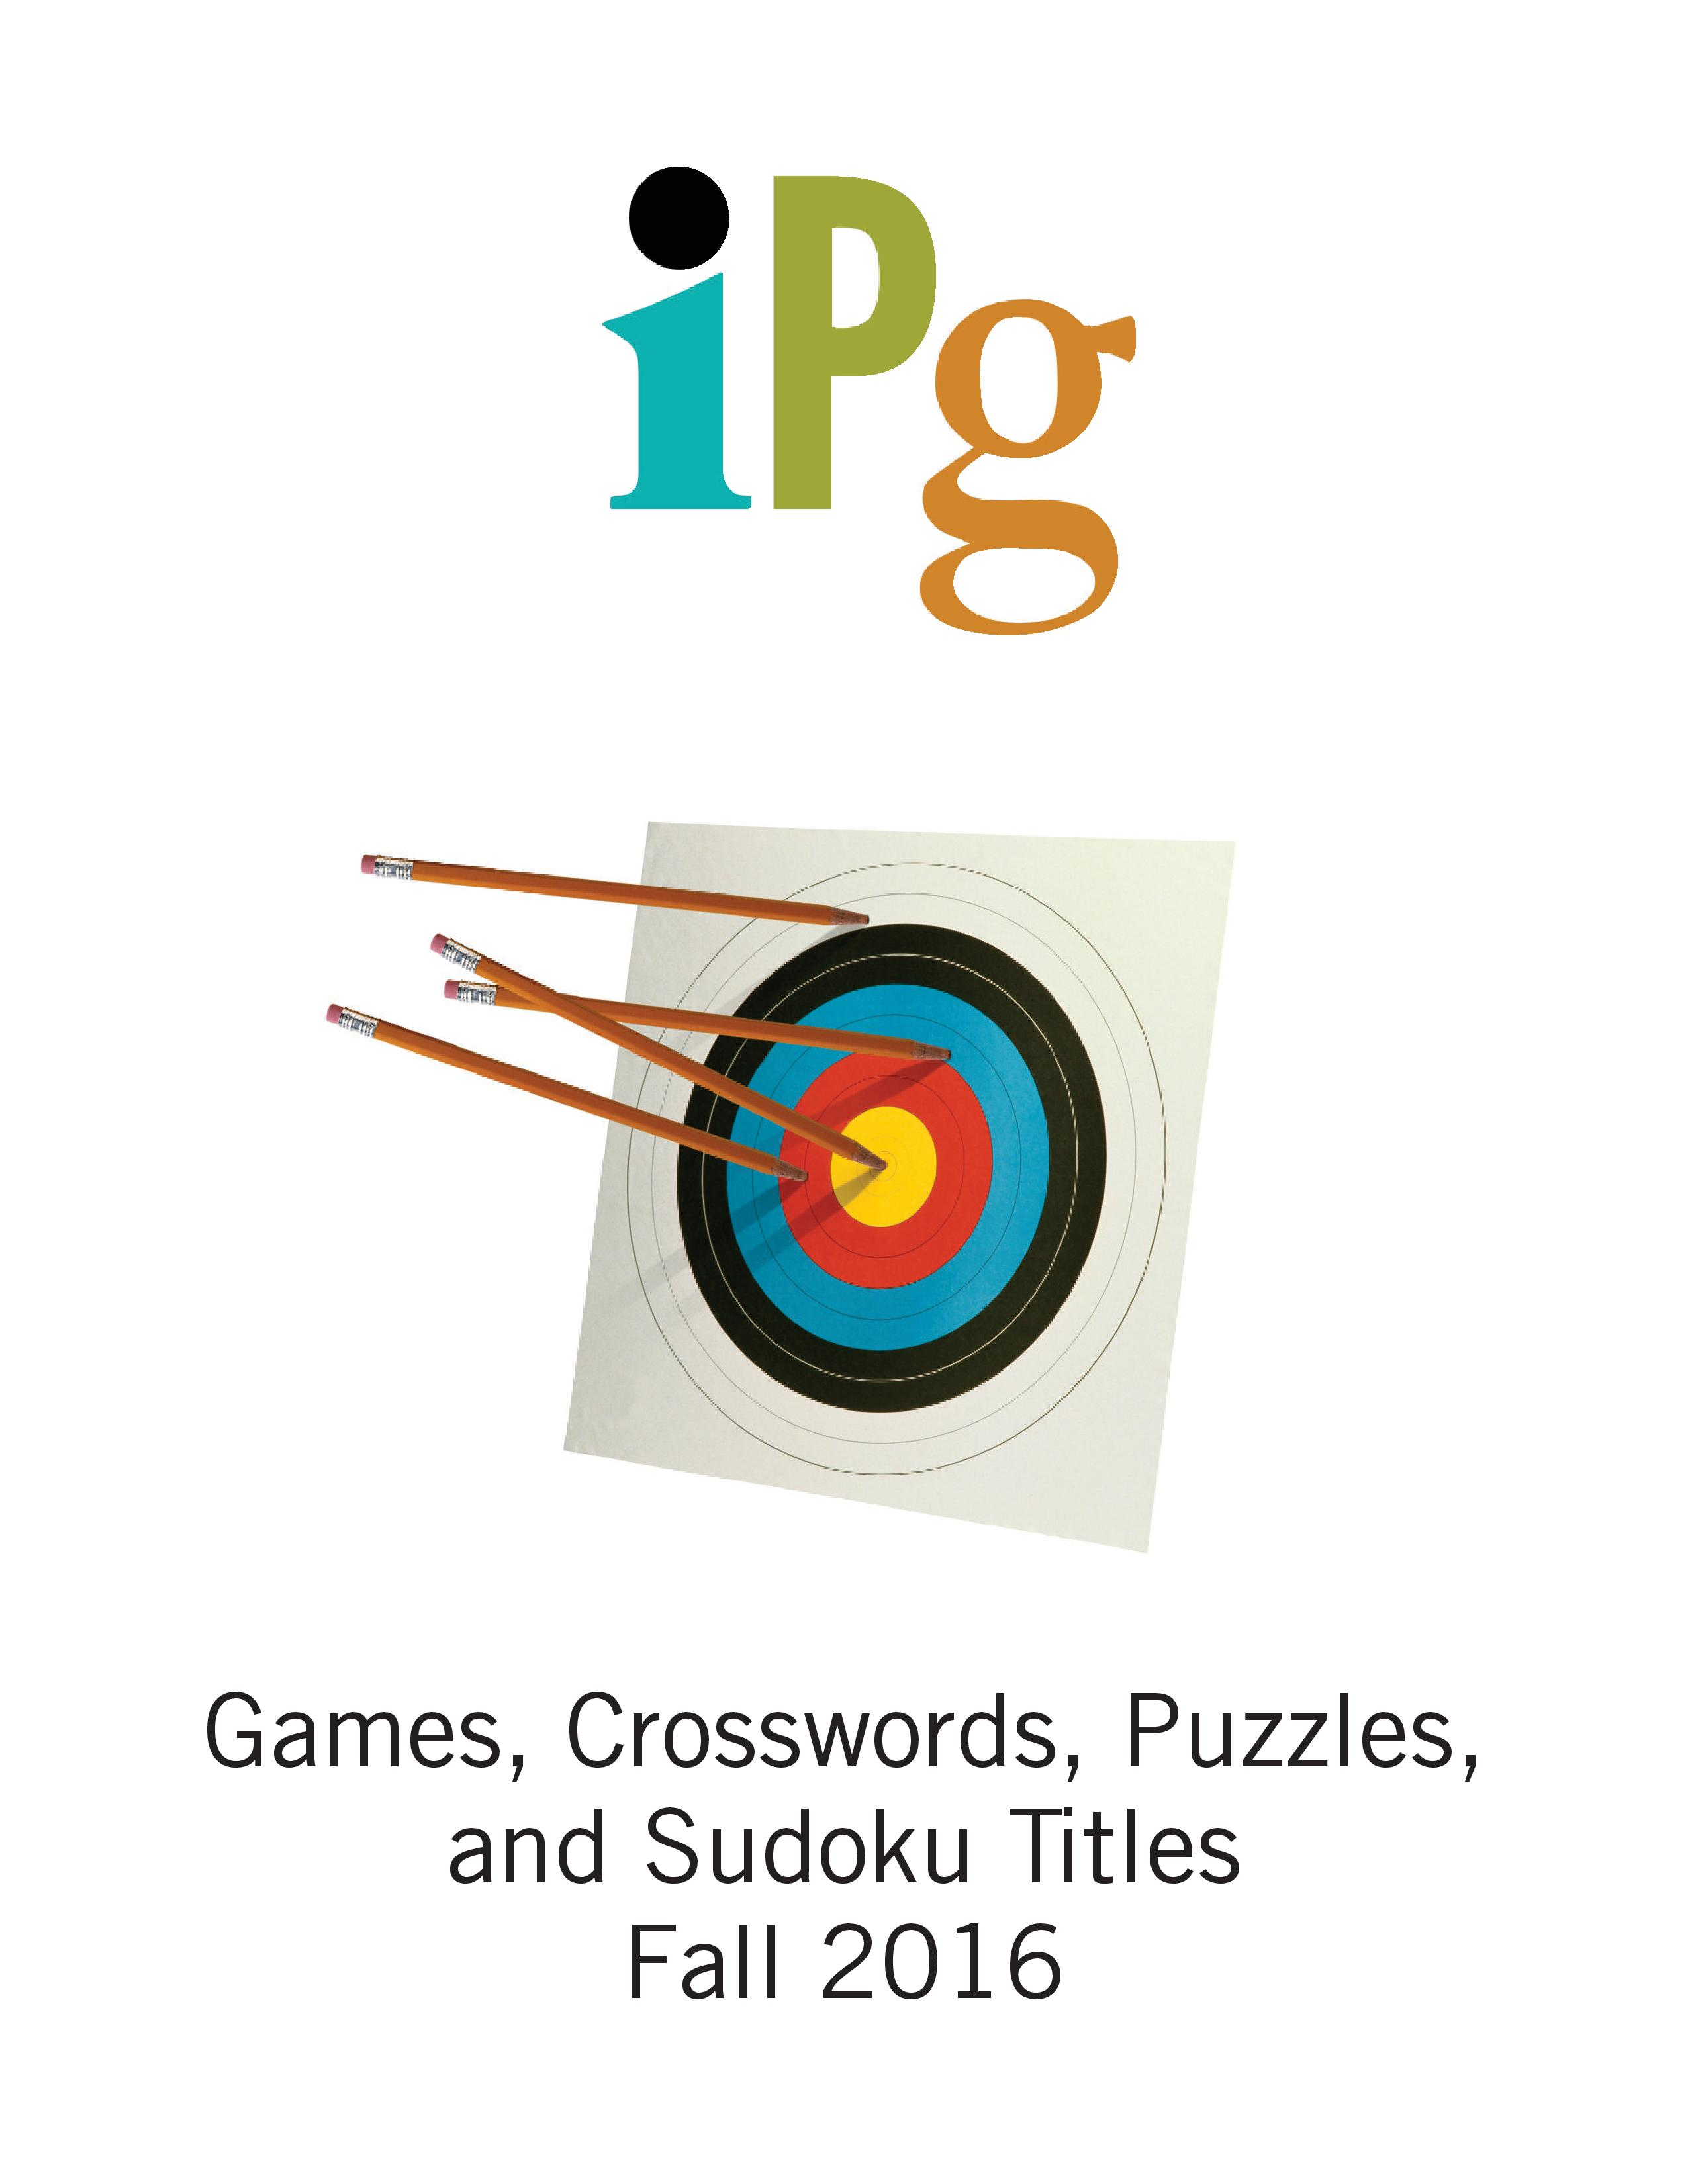 Games, Crosswords, Puzzles, and Sudoku Titles